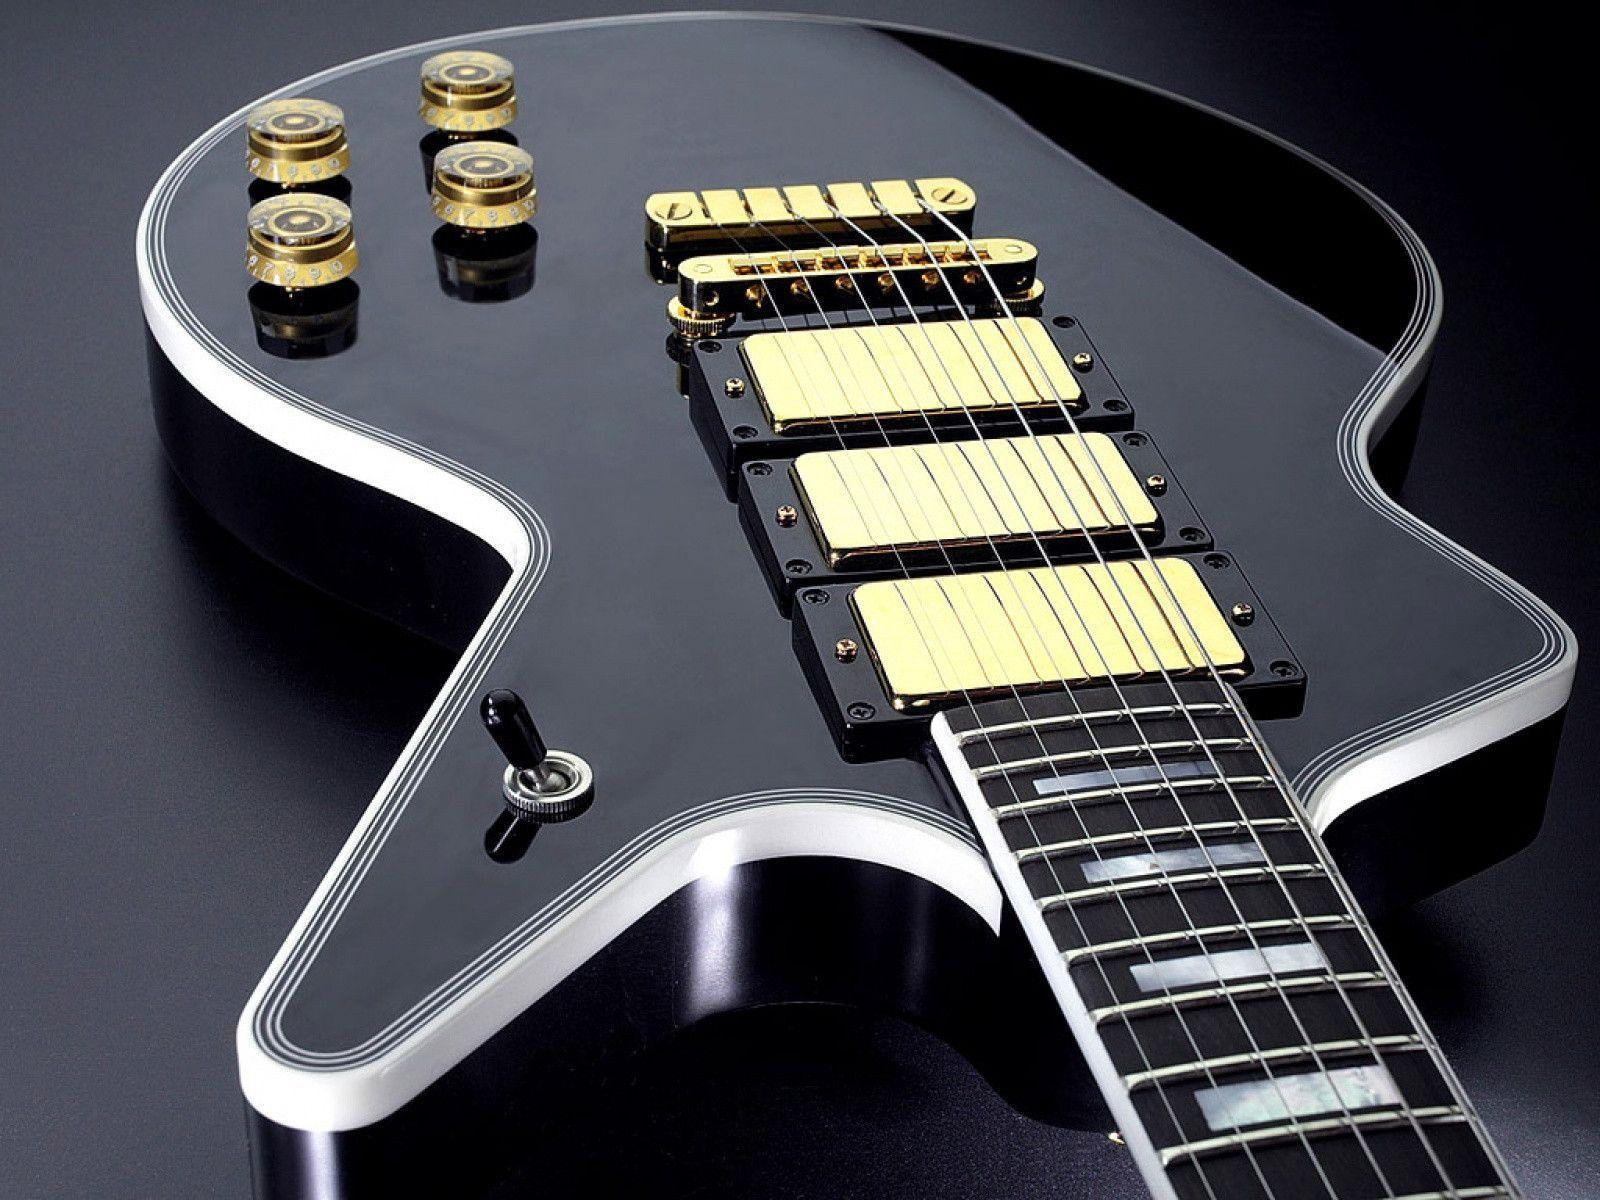 Cool Electric Guitar Wallpapers 8298 1600x1200 px